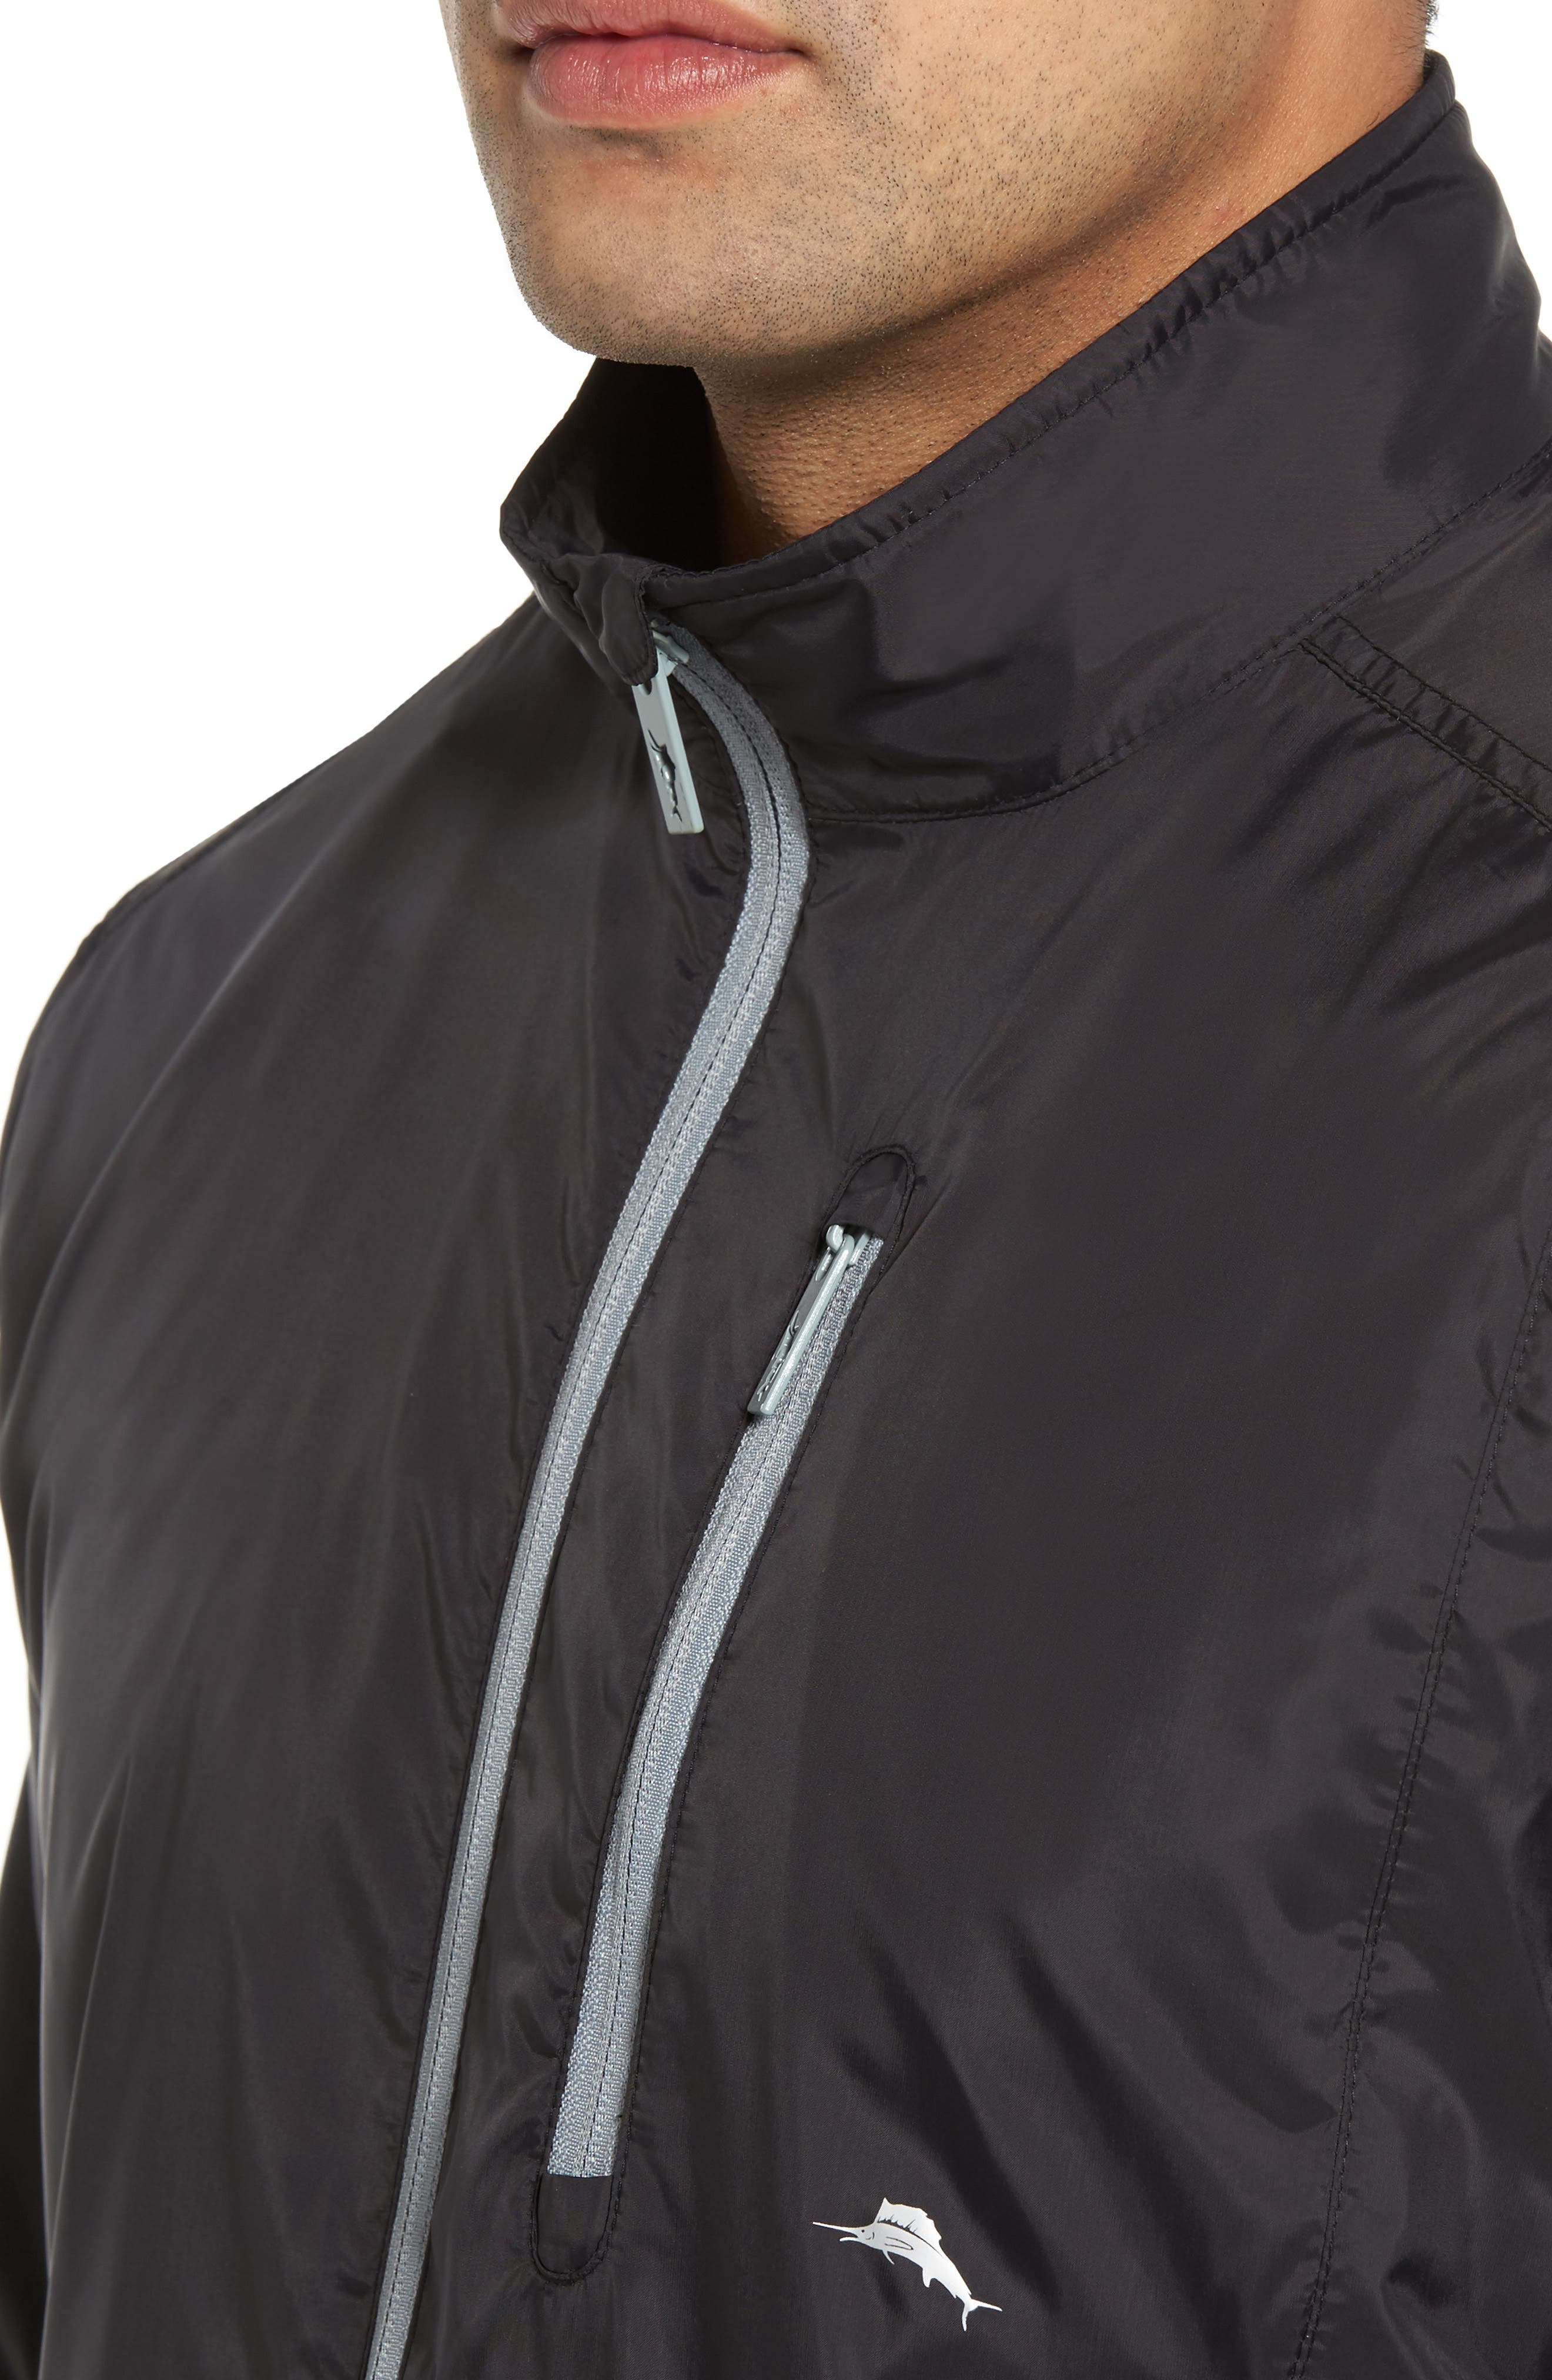 Nine Iron Water-Repellent Jacket,                             Alternate thumbnail 4, color,                             001